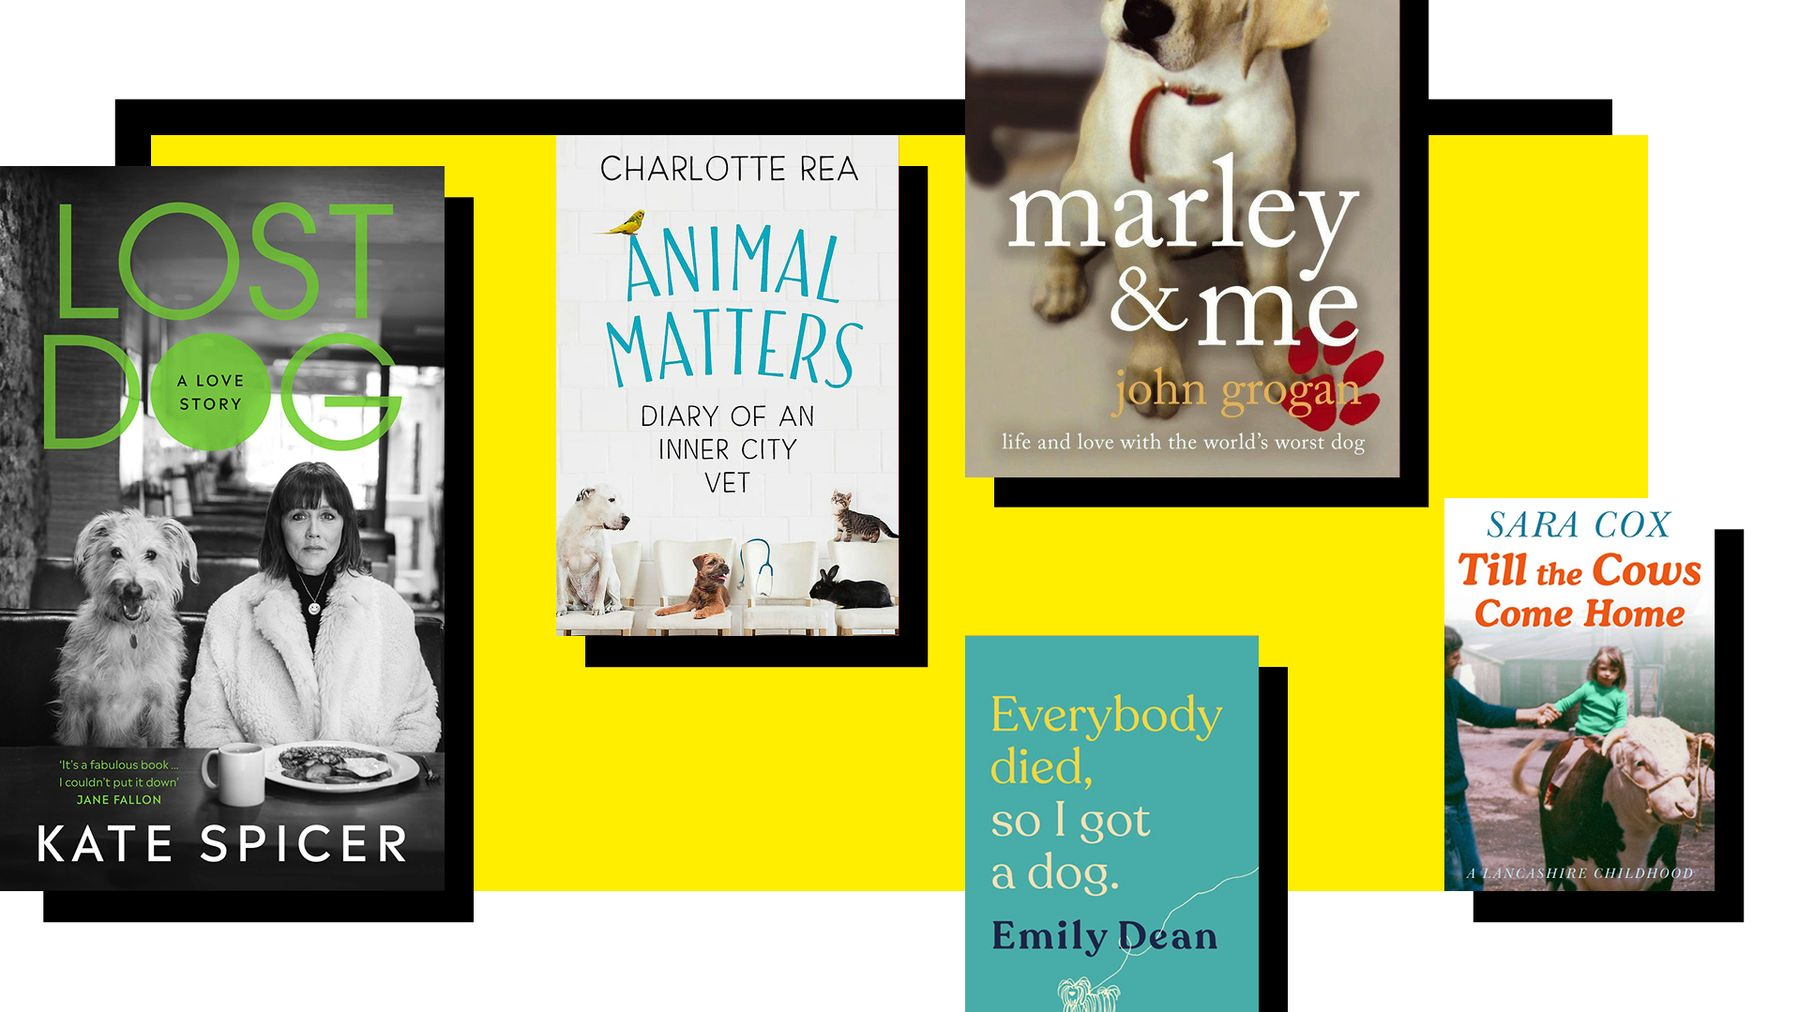 Lost Dog: A Love Story And Other Animal-Loving Books To Make